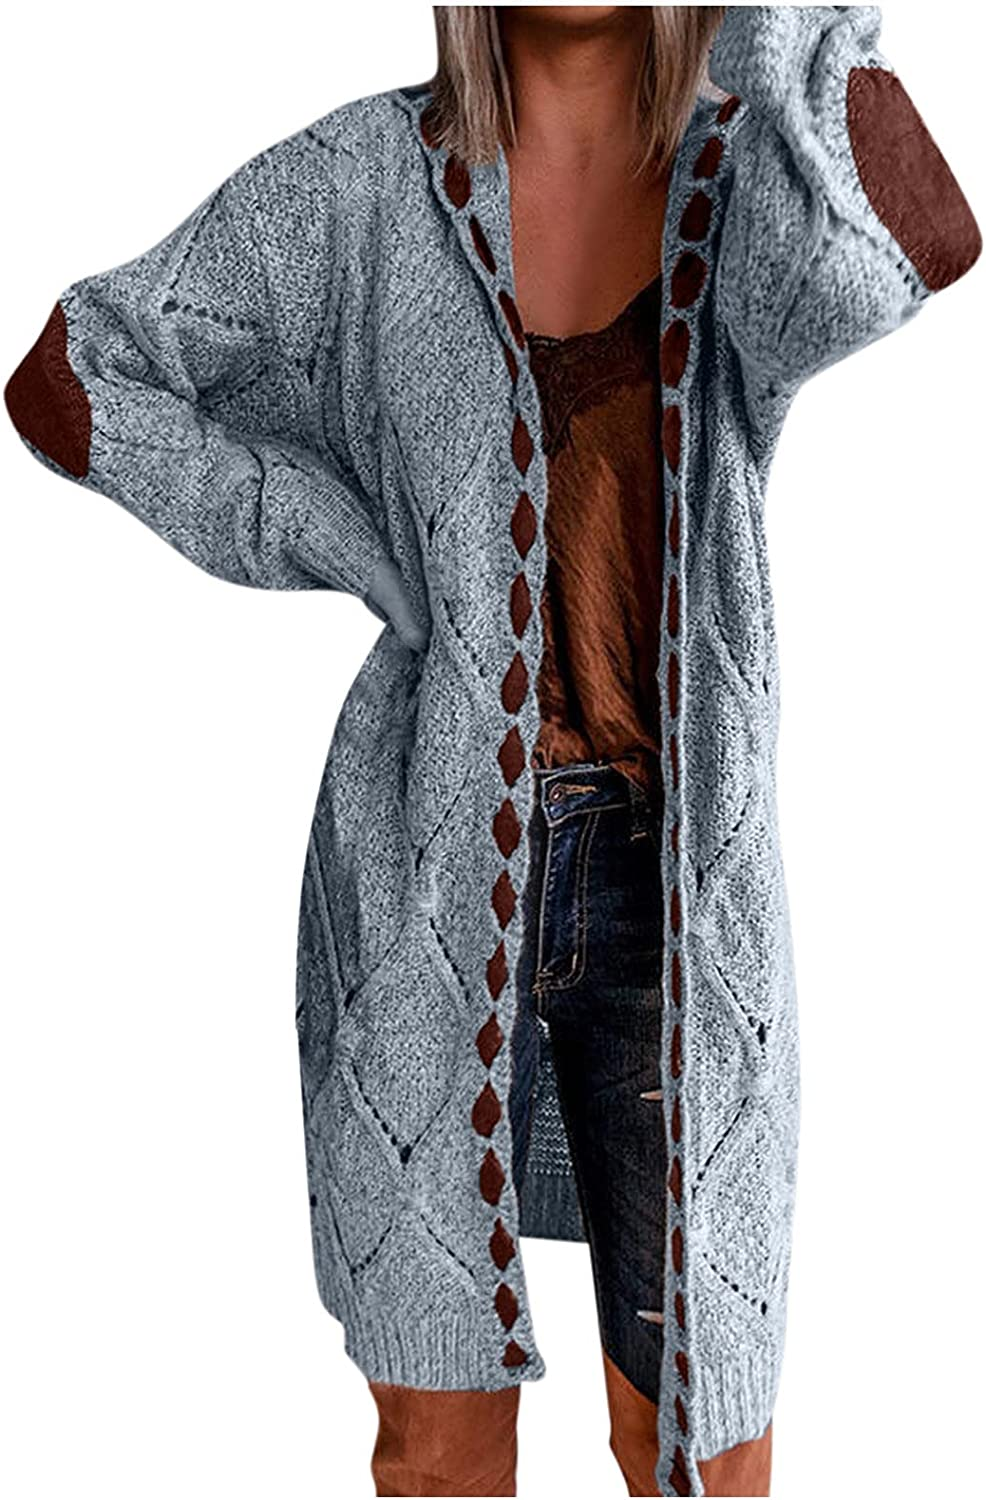 Fall Cardigan Sweaters for Women Sleeve All items in the store Long Lightweight K Regular discount Cable